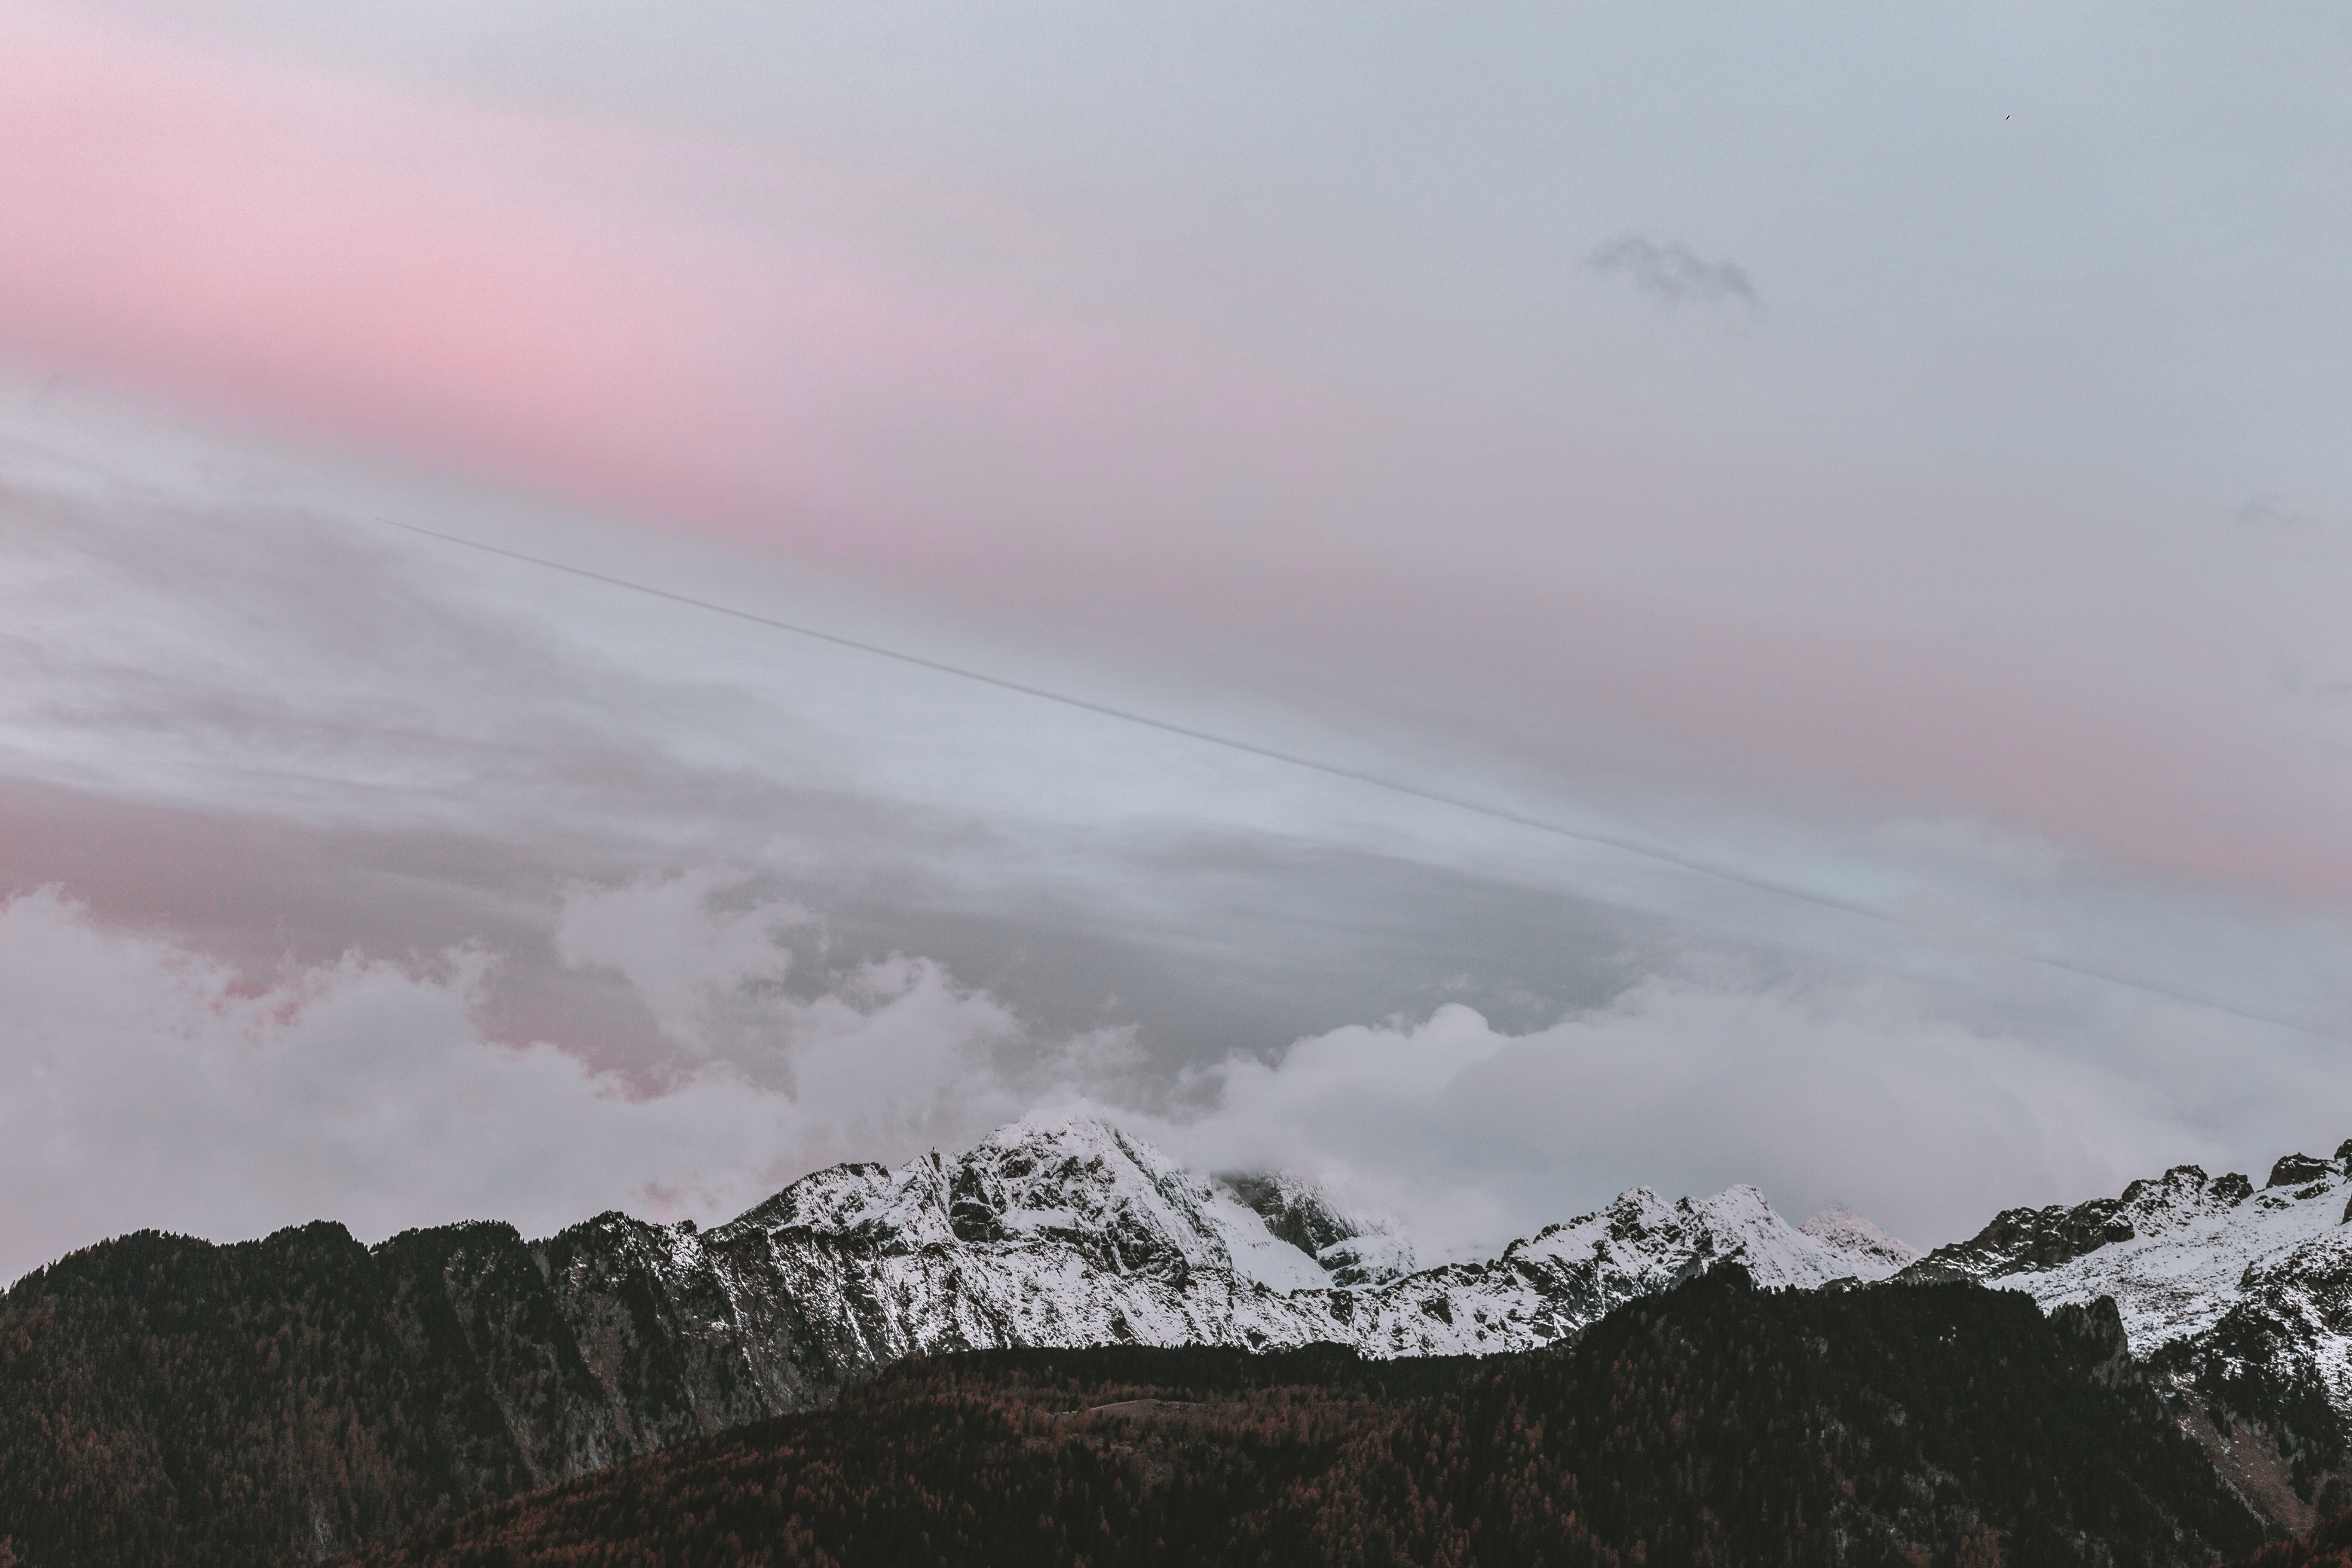 white clouds near snow-capped mountain